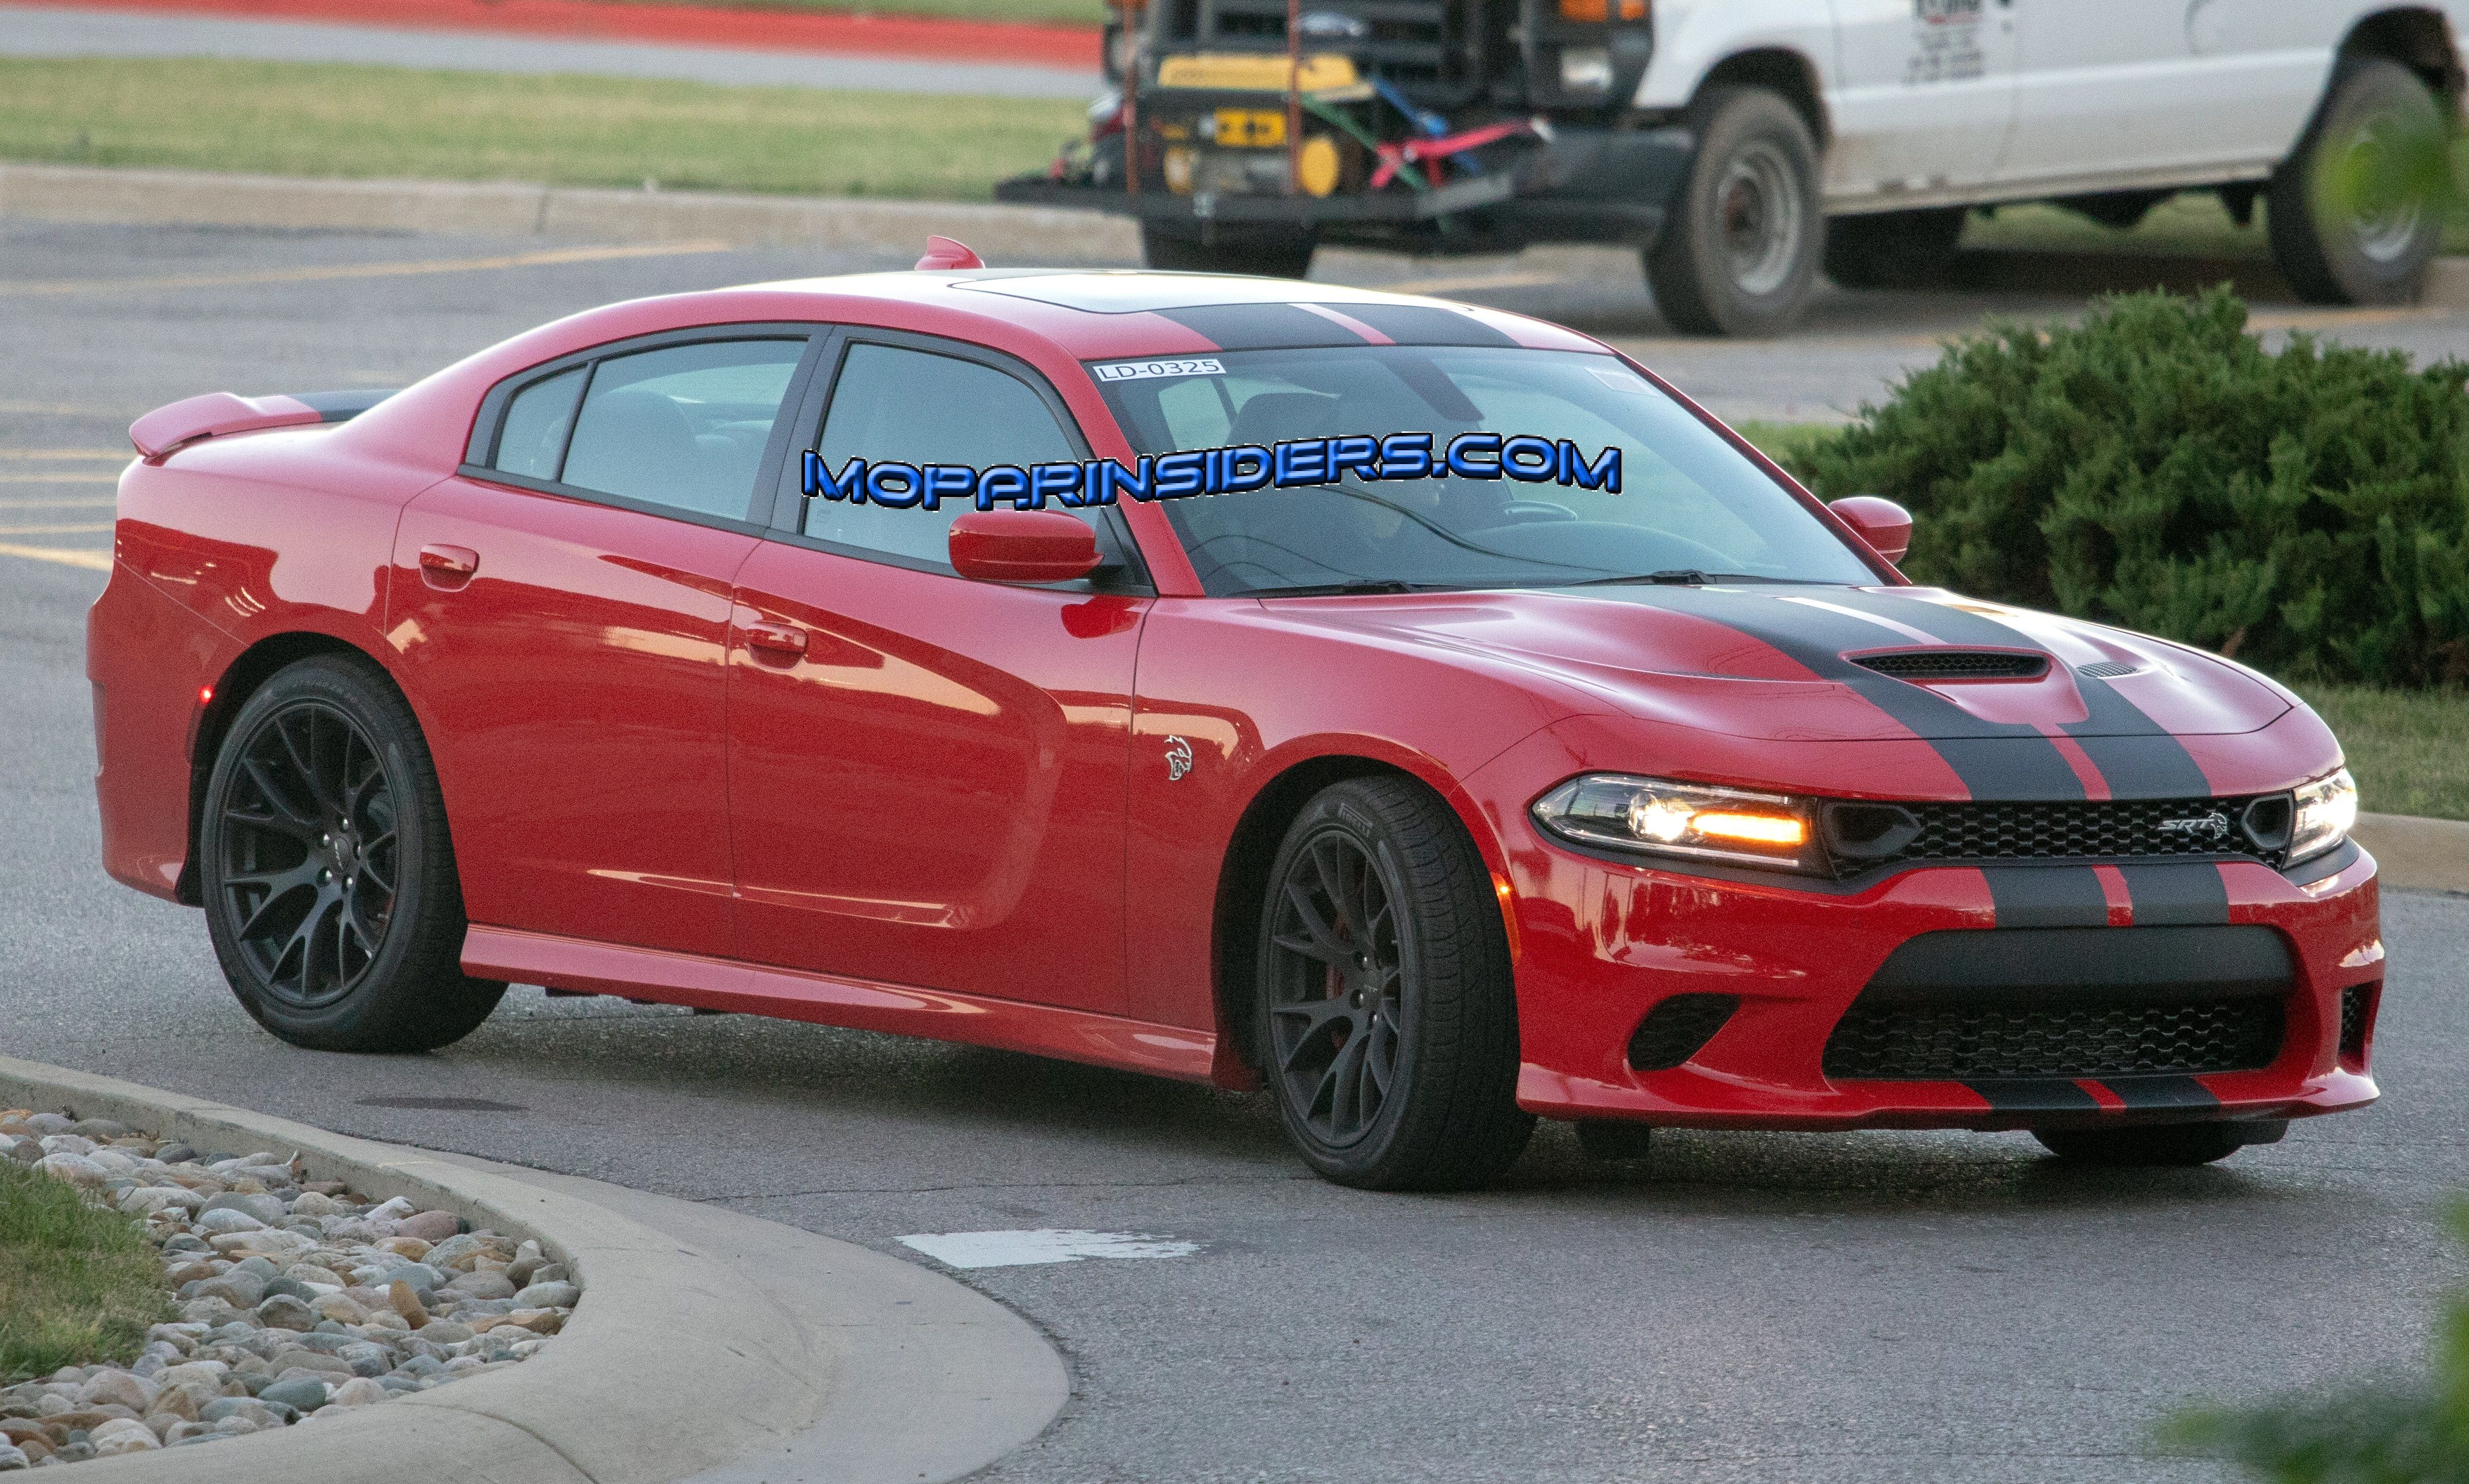 Pin By Dremare Redmond Gomillion On 2020 Dodge Charger Hellcat Srt Redeye Wide Body Charger Srt Hellcat Dodge Charger Dodge Charger Srt